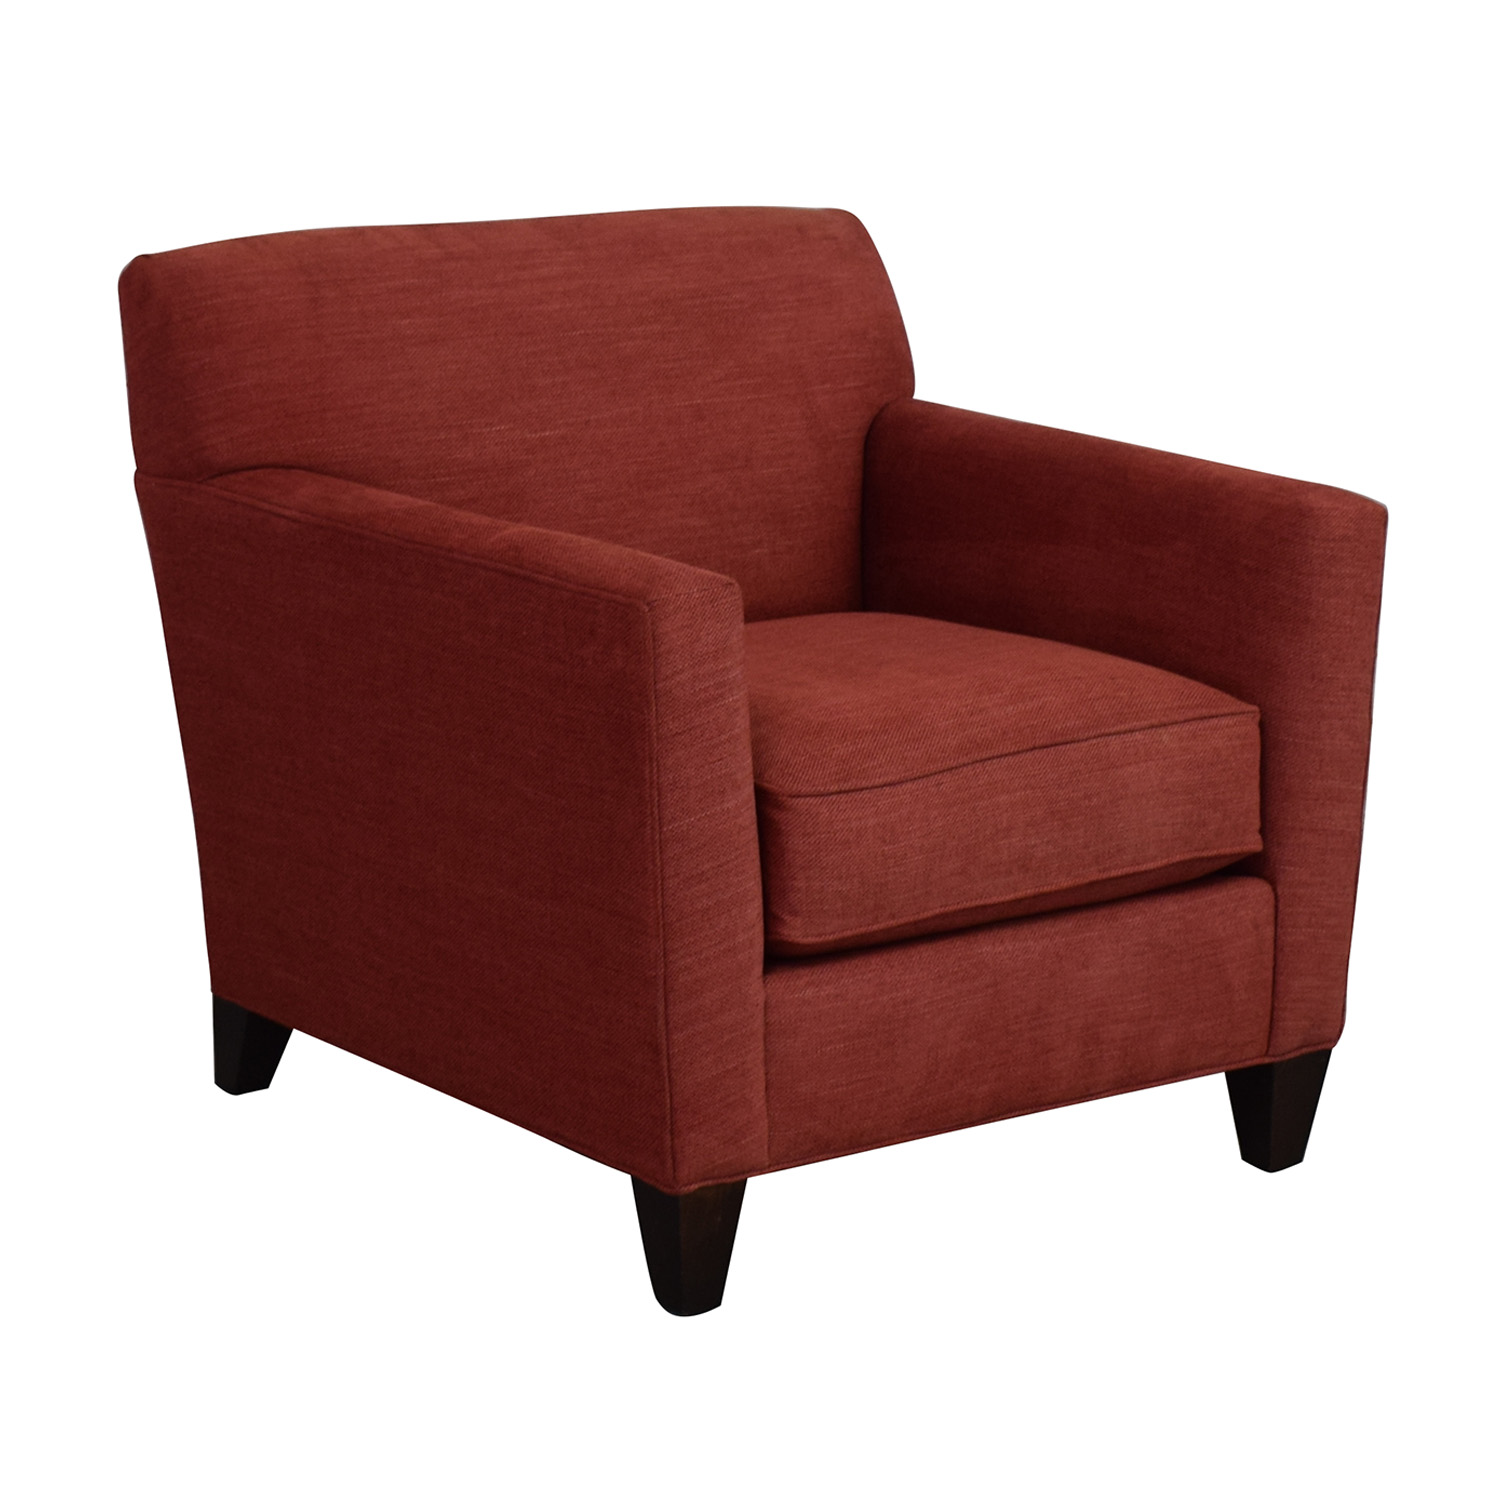 Crate & Barrel Crate & Barrel Hennessy Arm Chair second hand